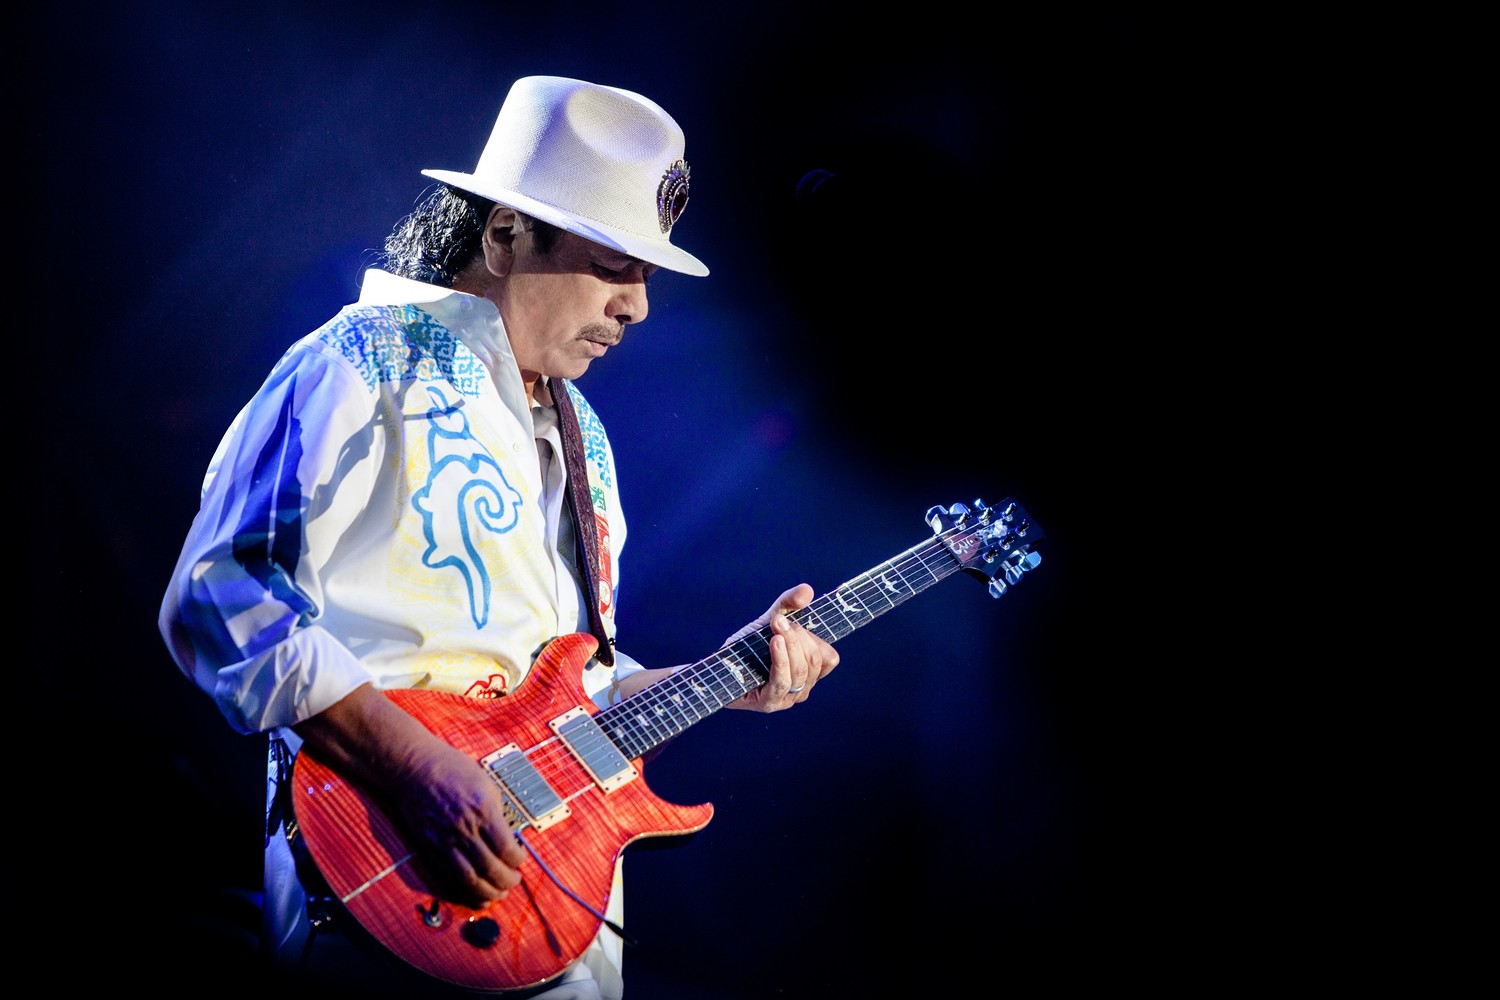 Carlos Santana is performing at the St. Augustine Amphitheatre on Saturday, April 20, 2019. 